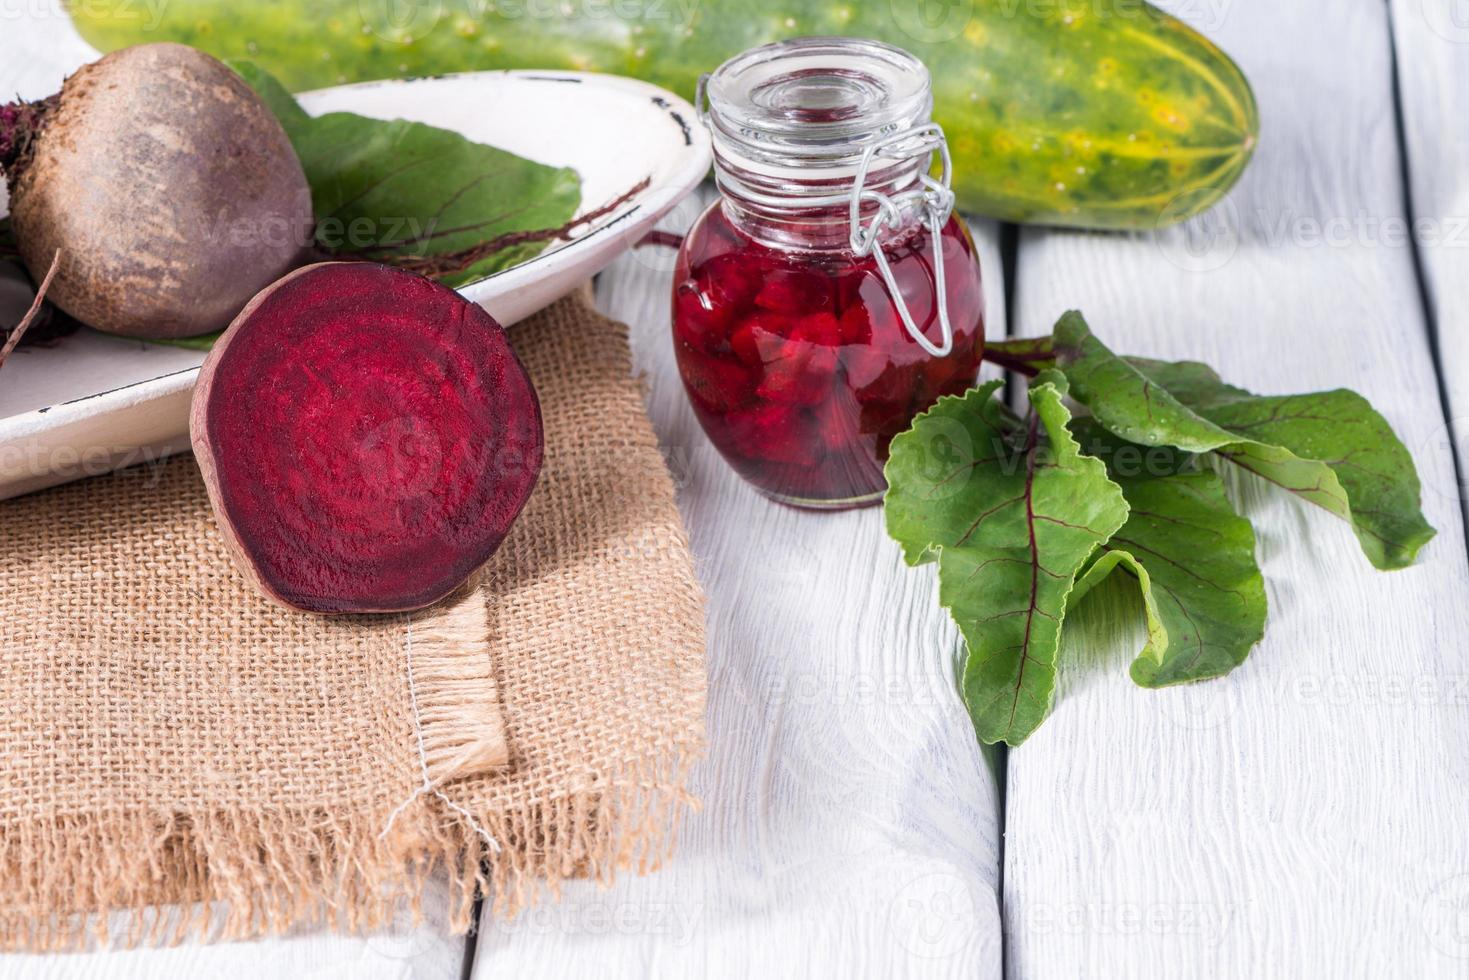 Beetroots rustic wooden table photo